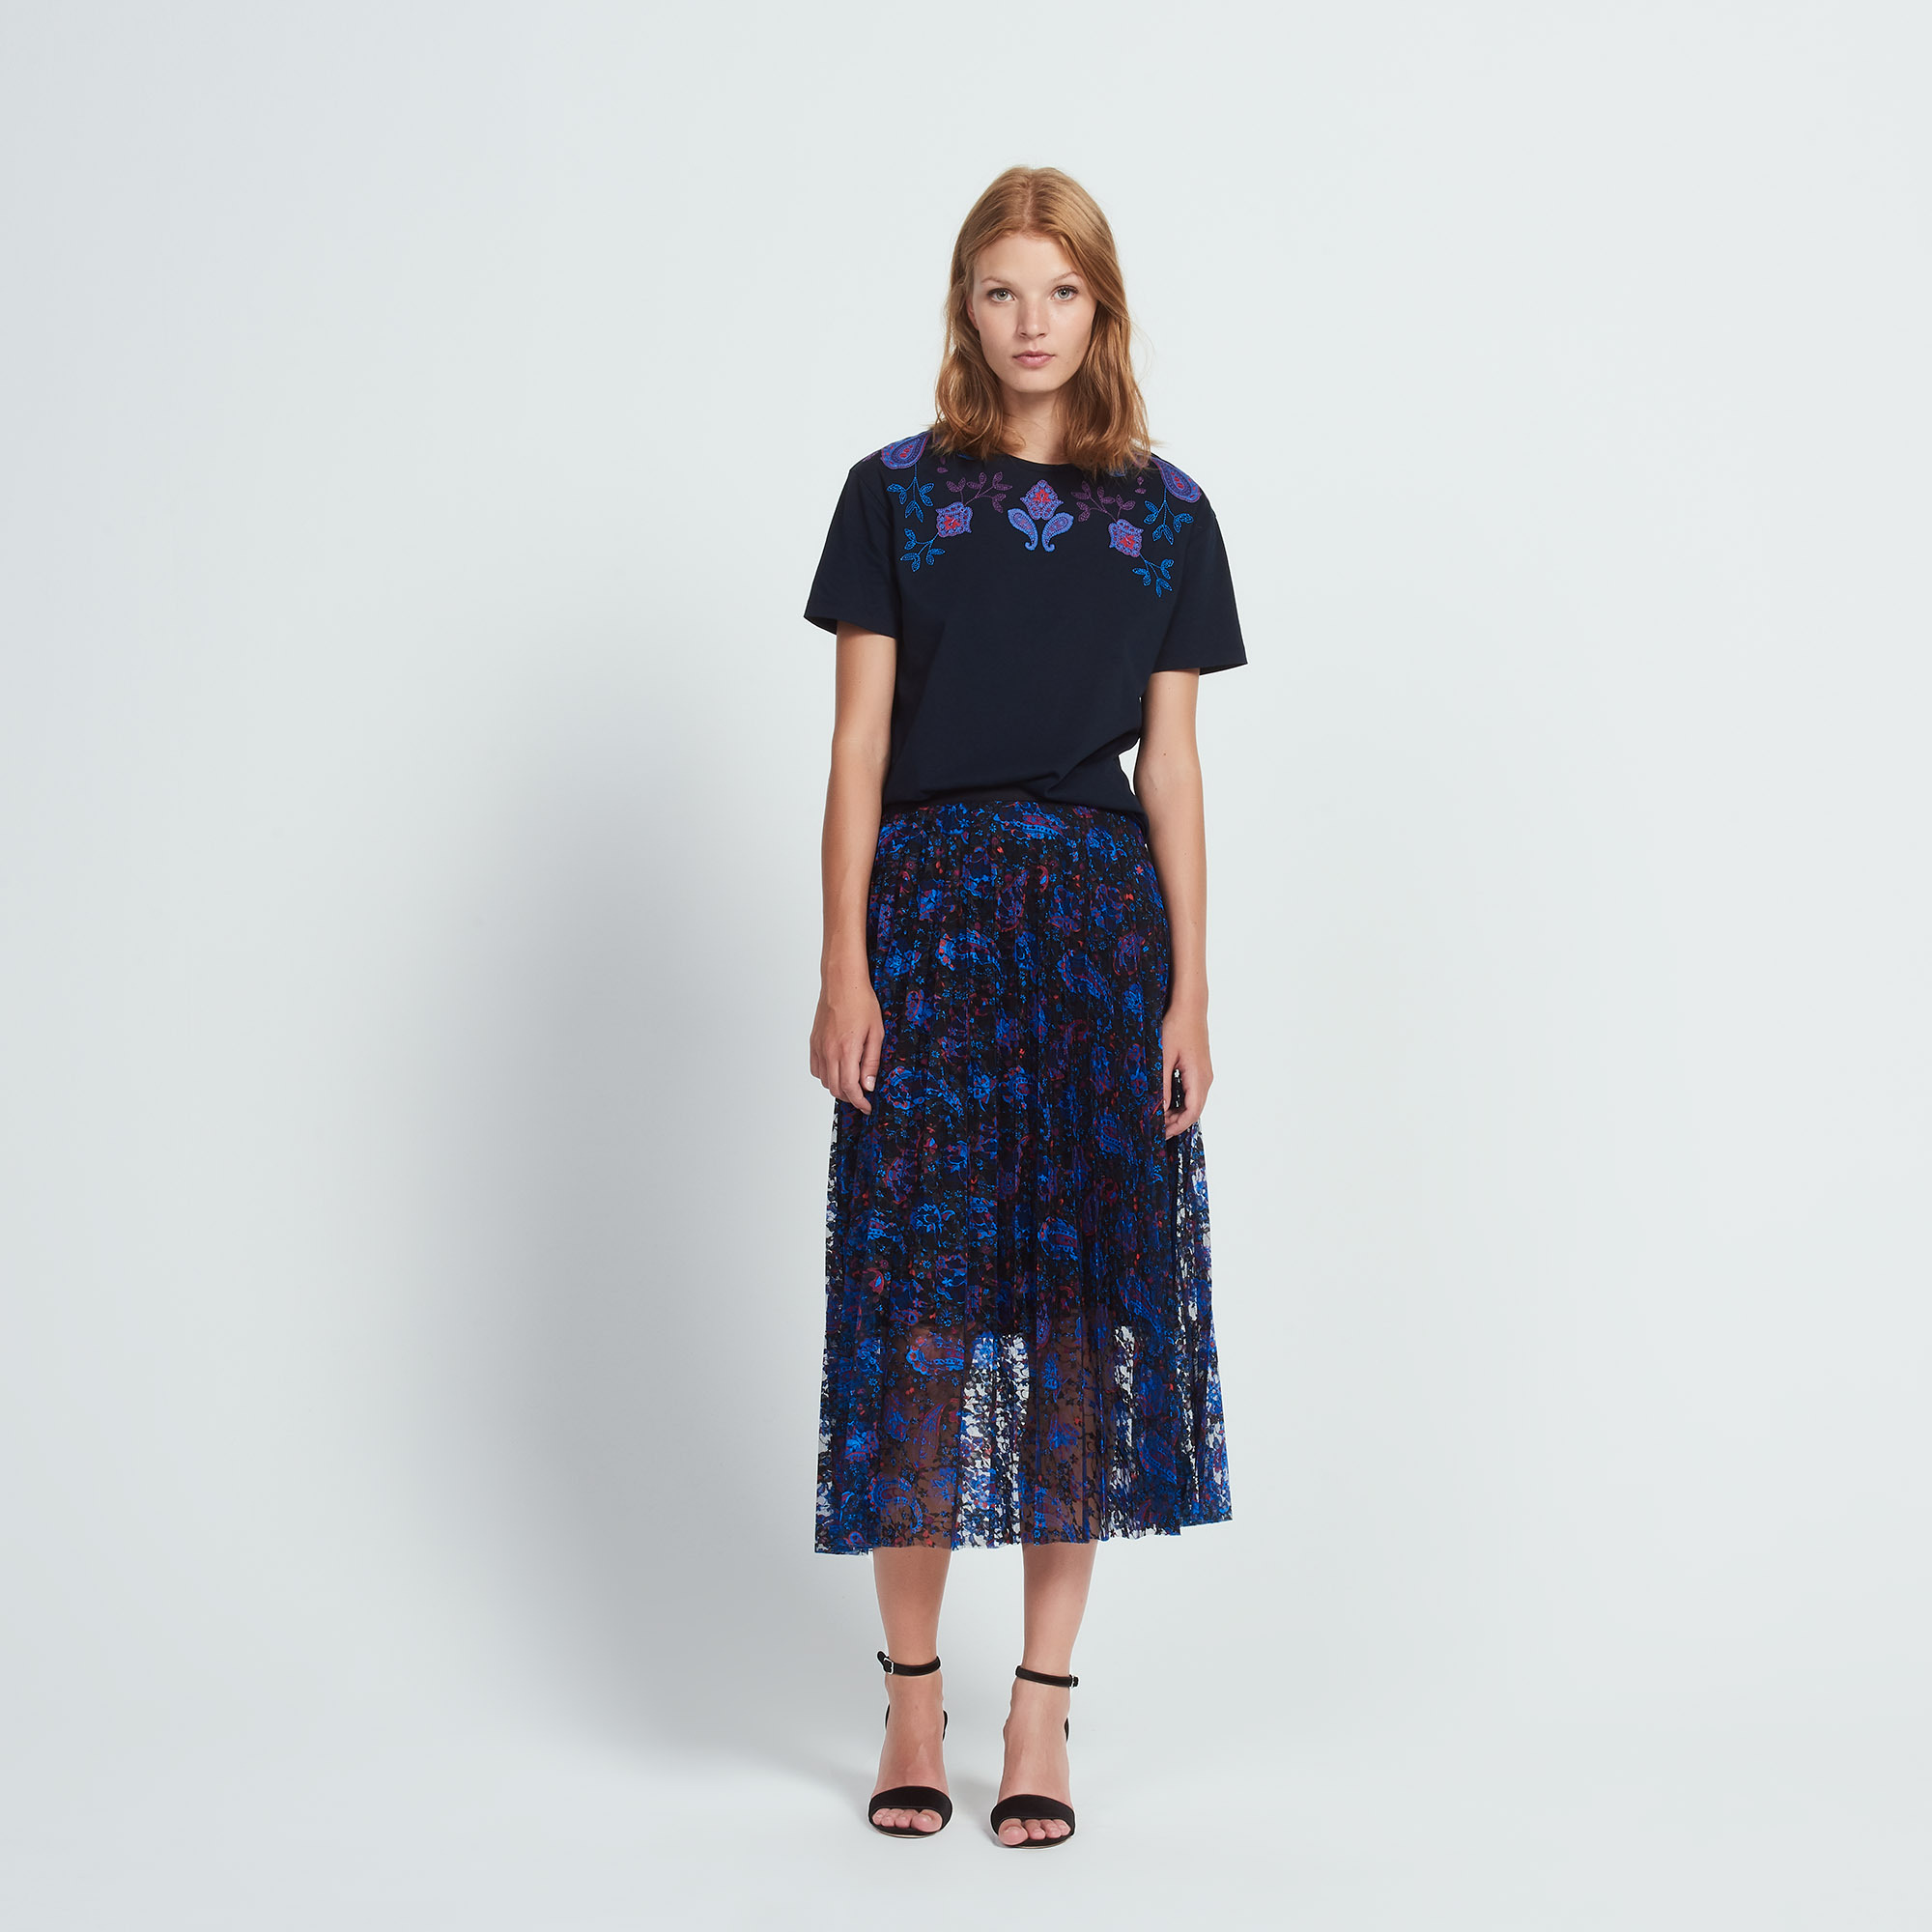 日本未入荷【sandro】Printed skirt with sheer effect スカート